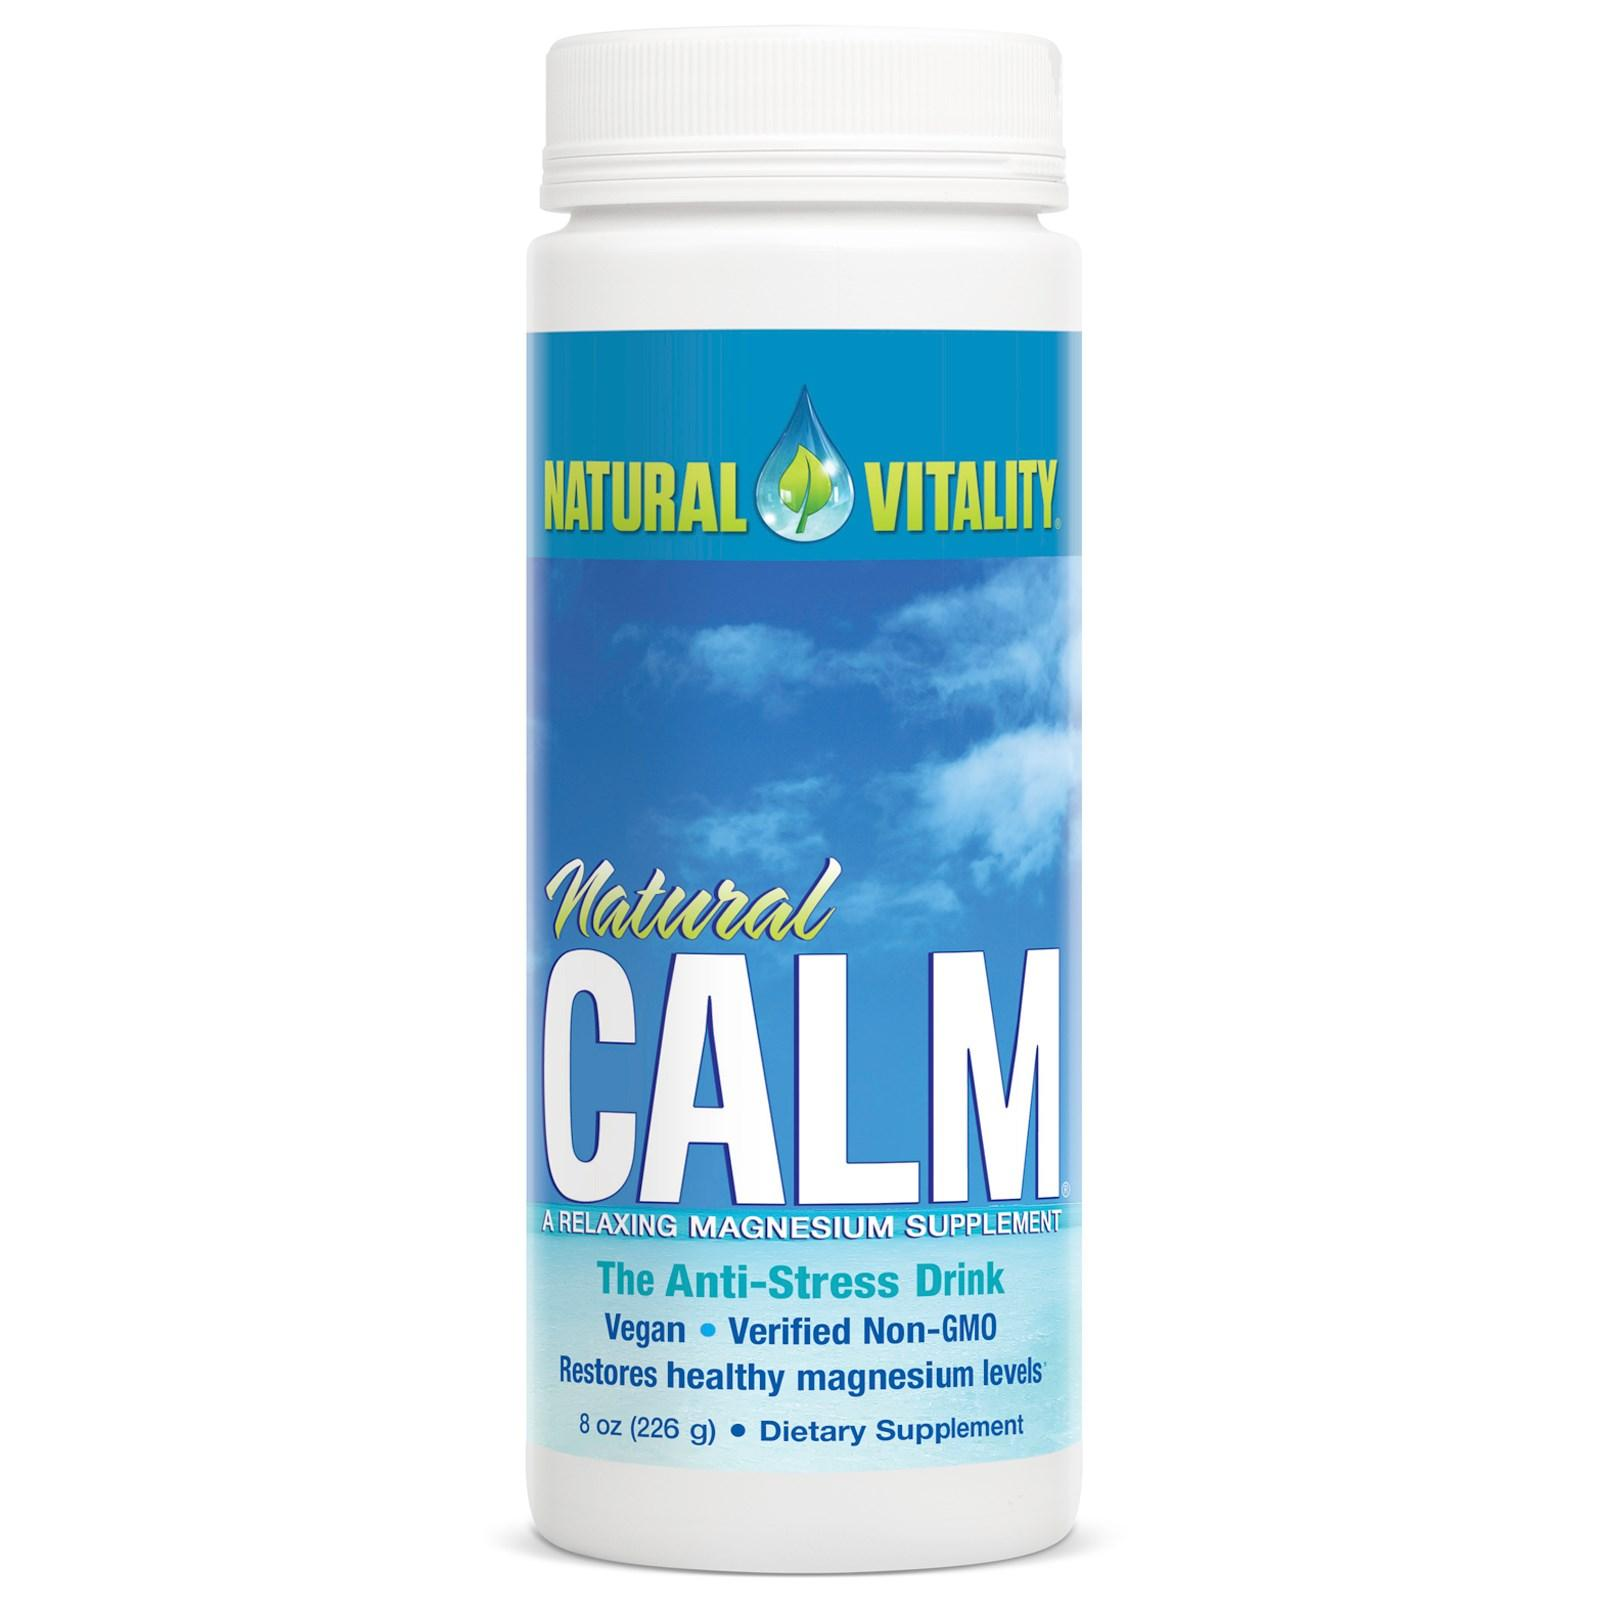 Is natural calm safe